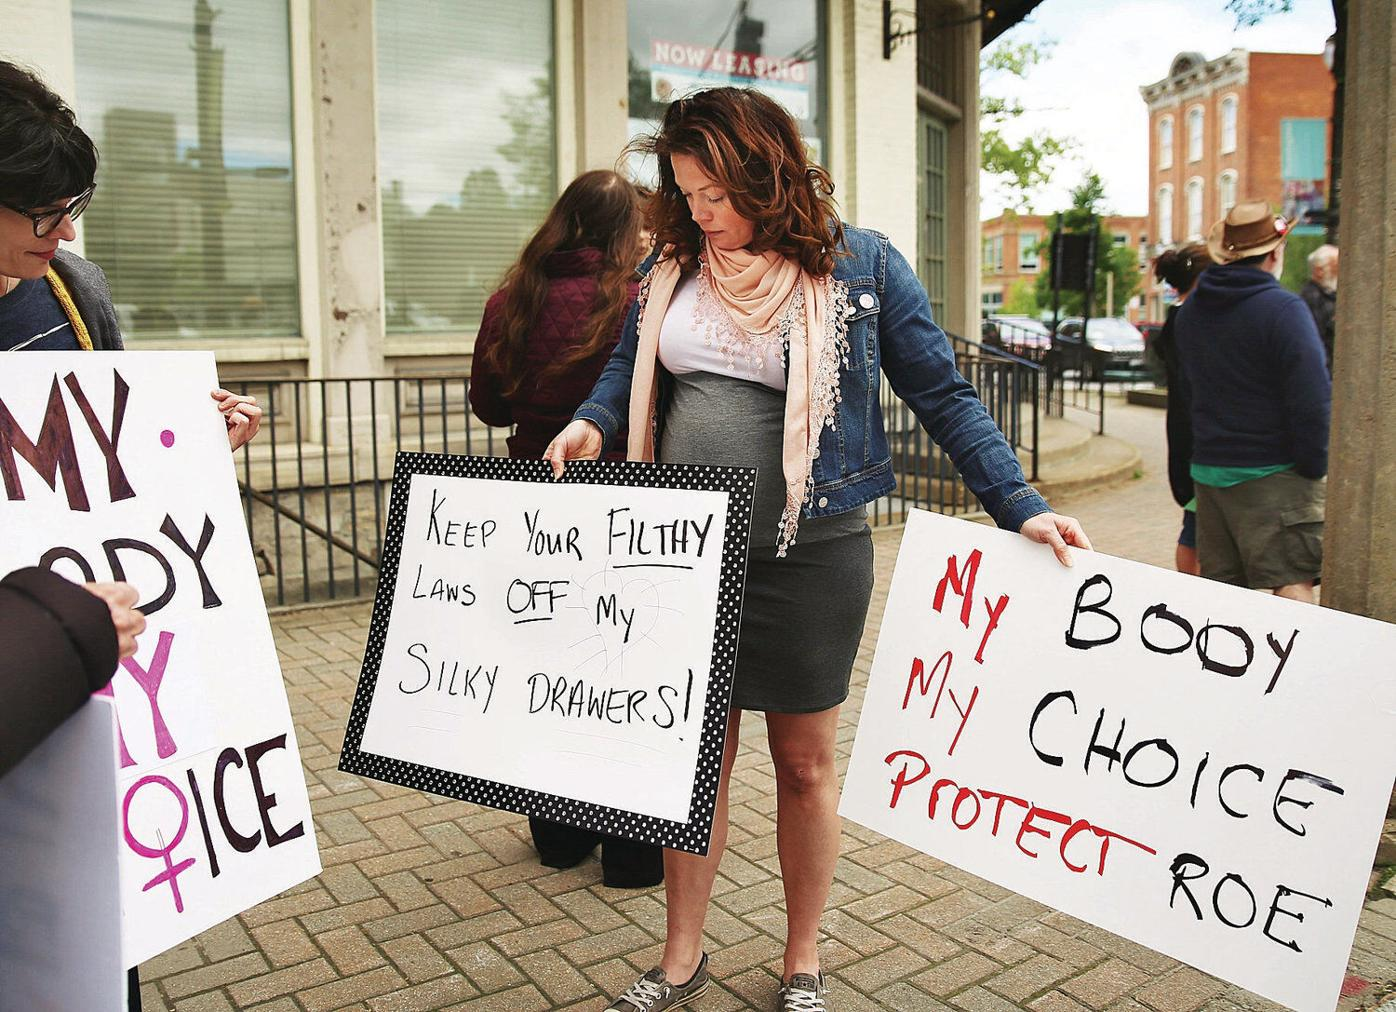 Local demonstrators join national action against abortion limits